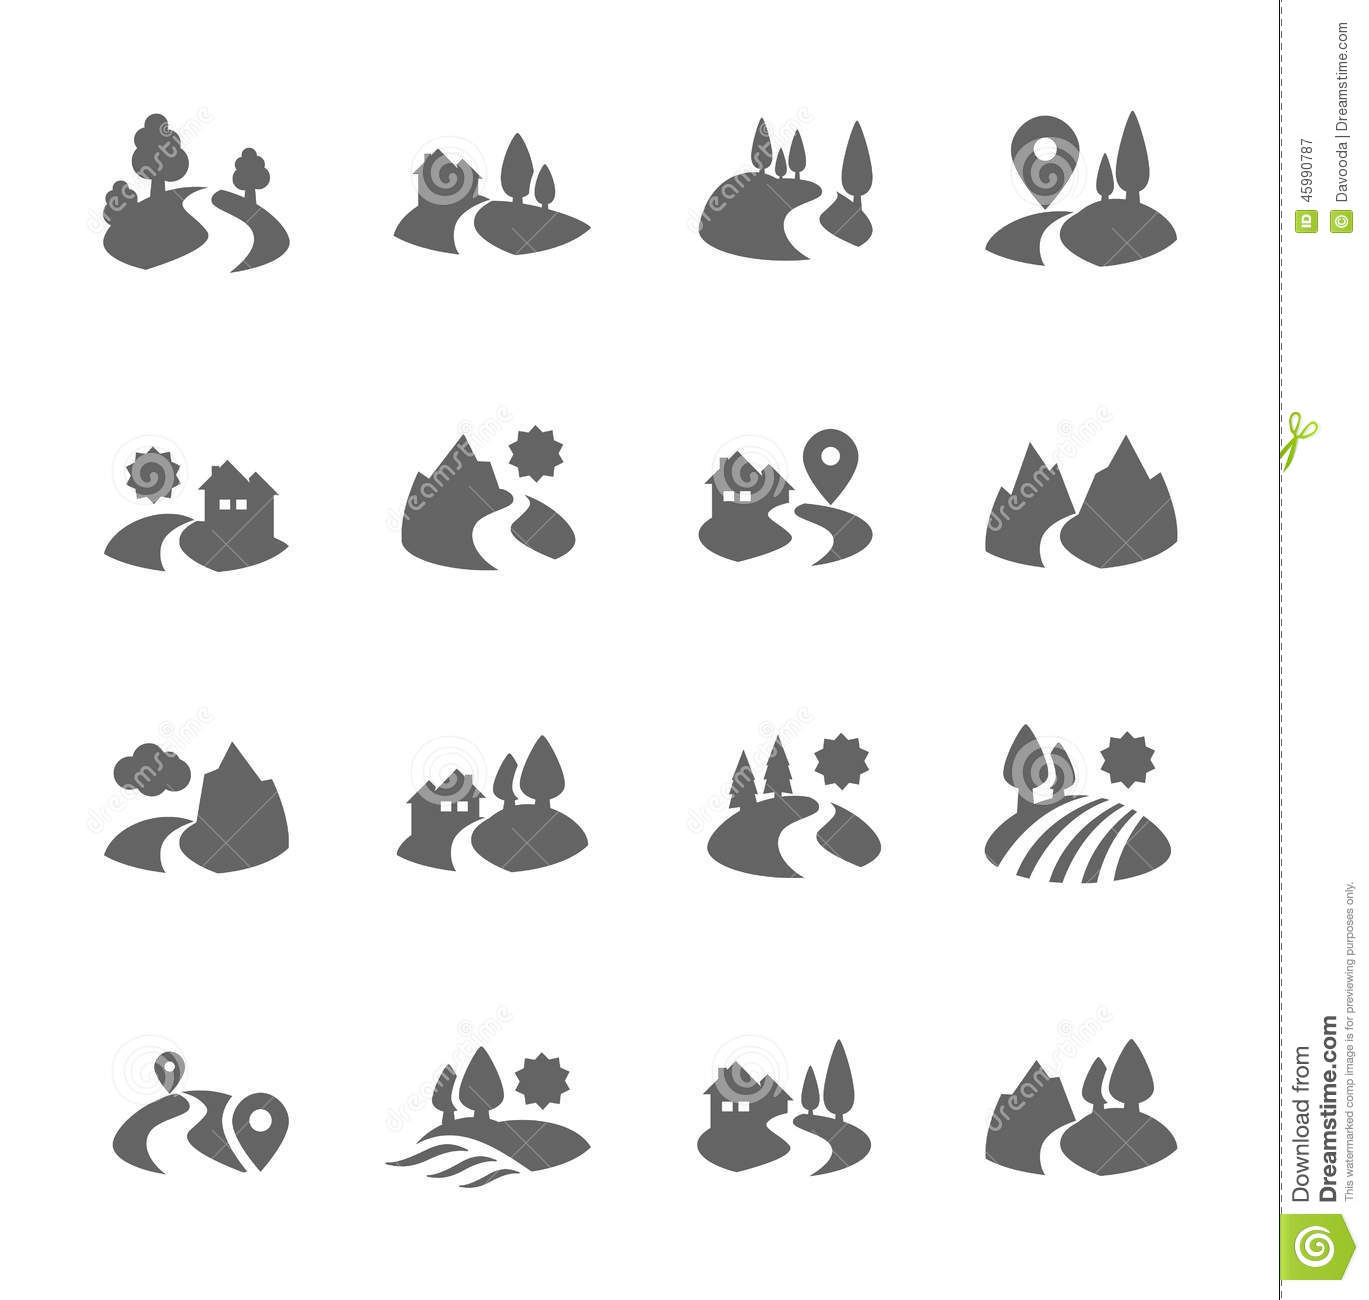 Land Icons Stock Vector. Illustration Of Forest